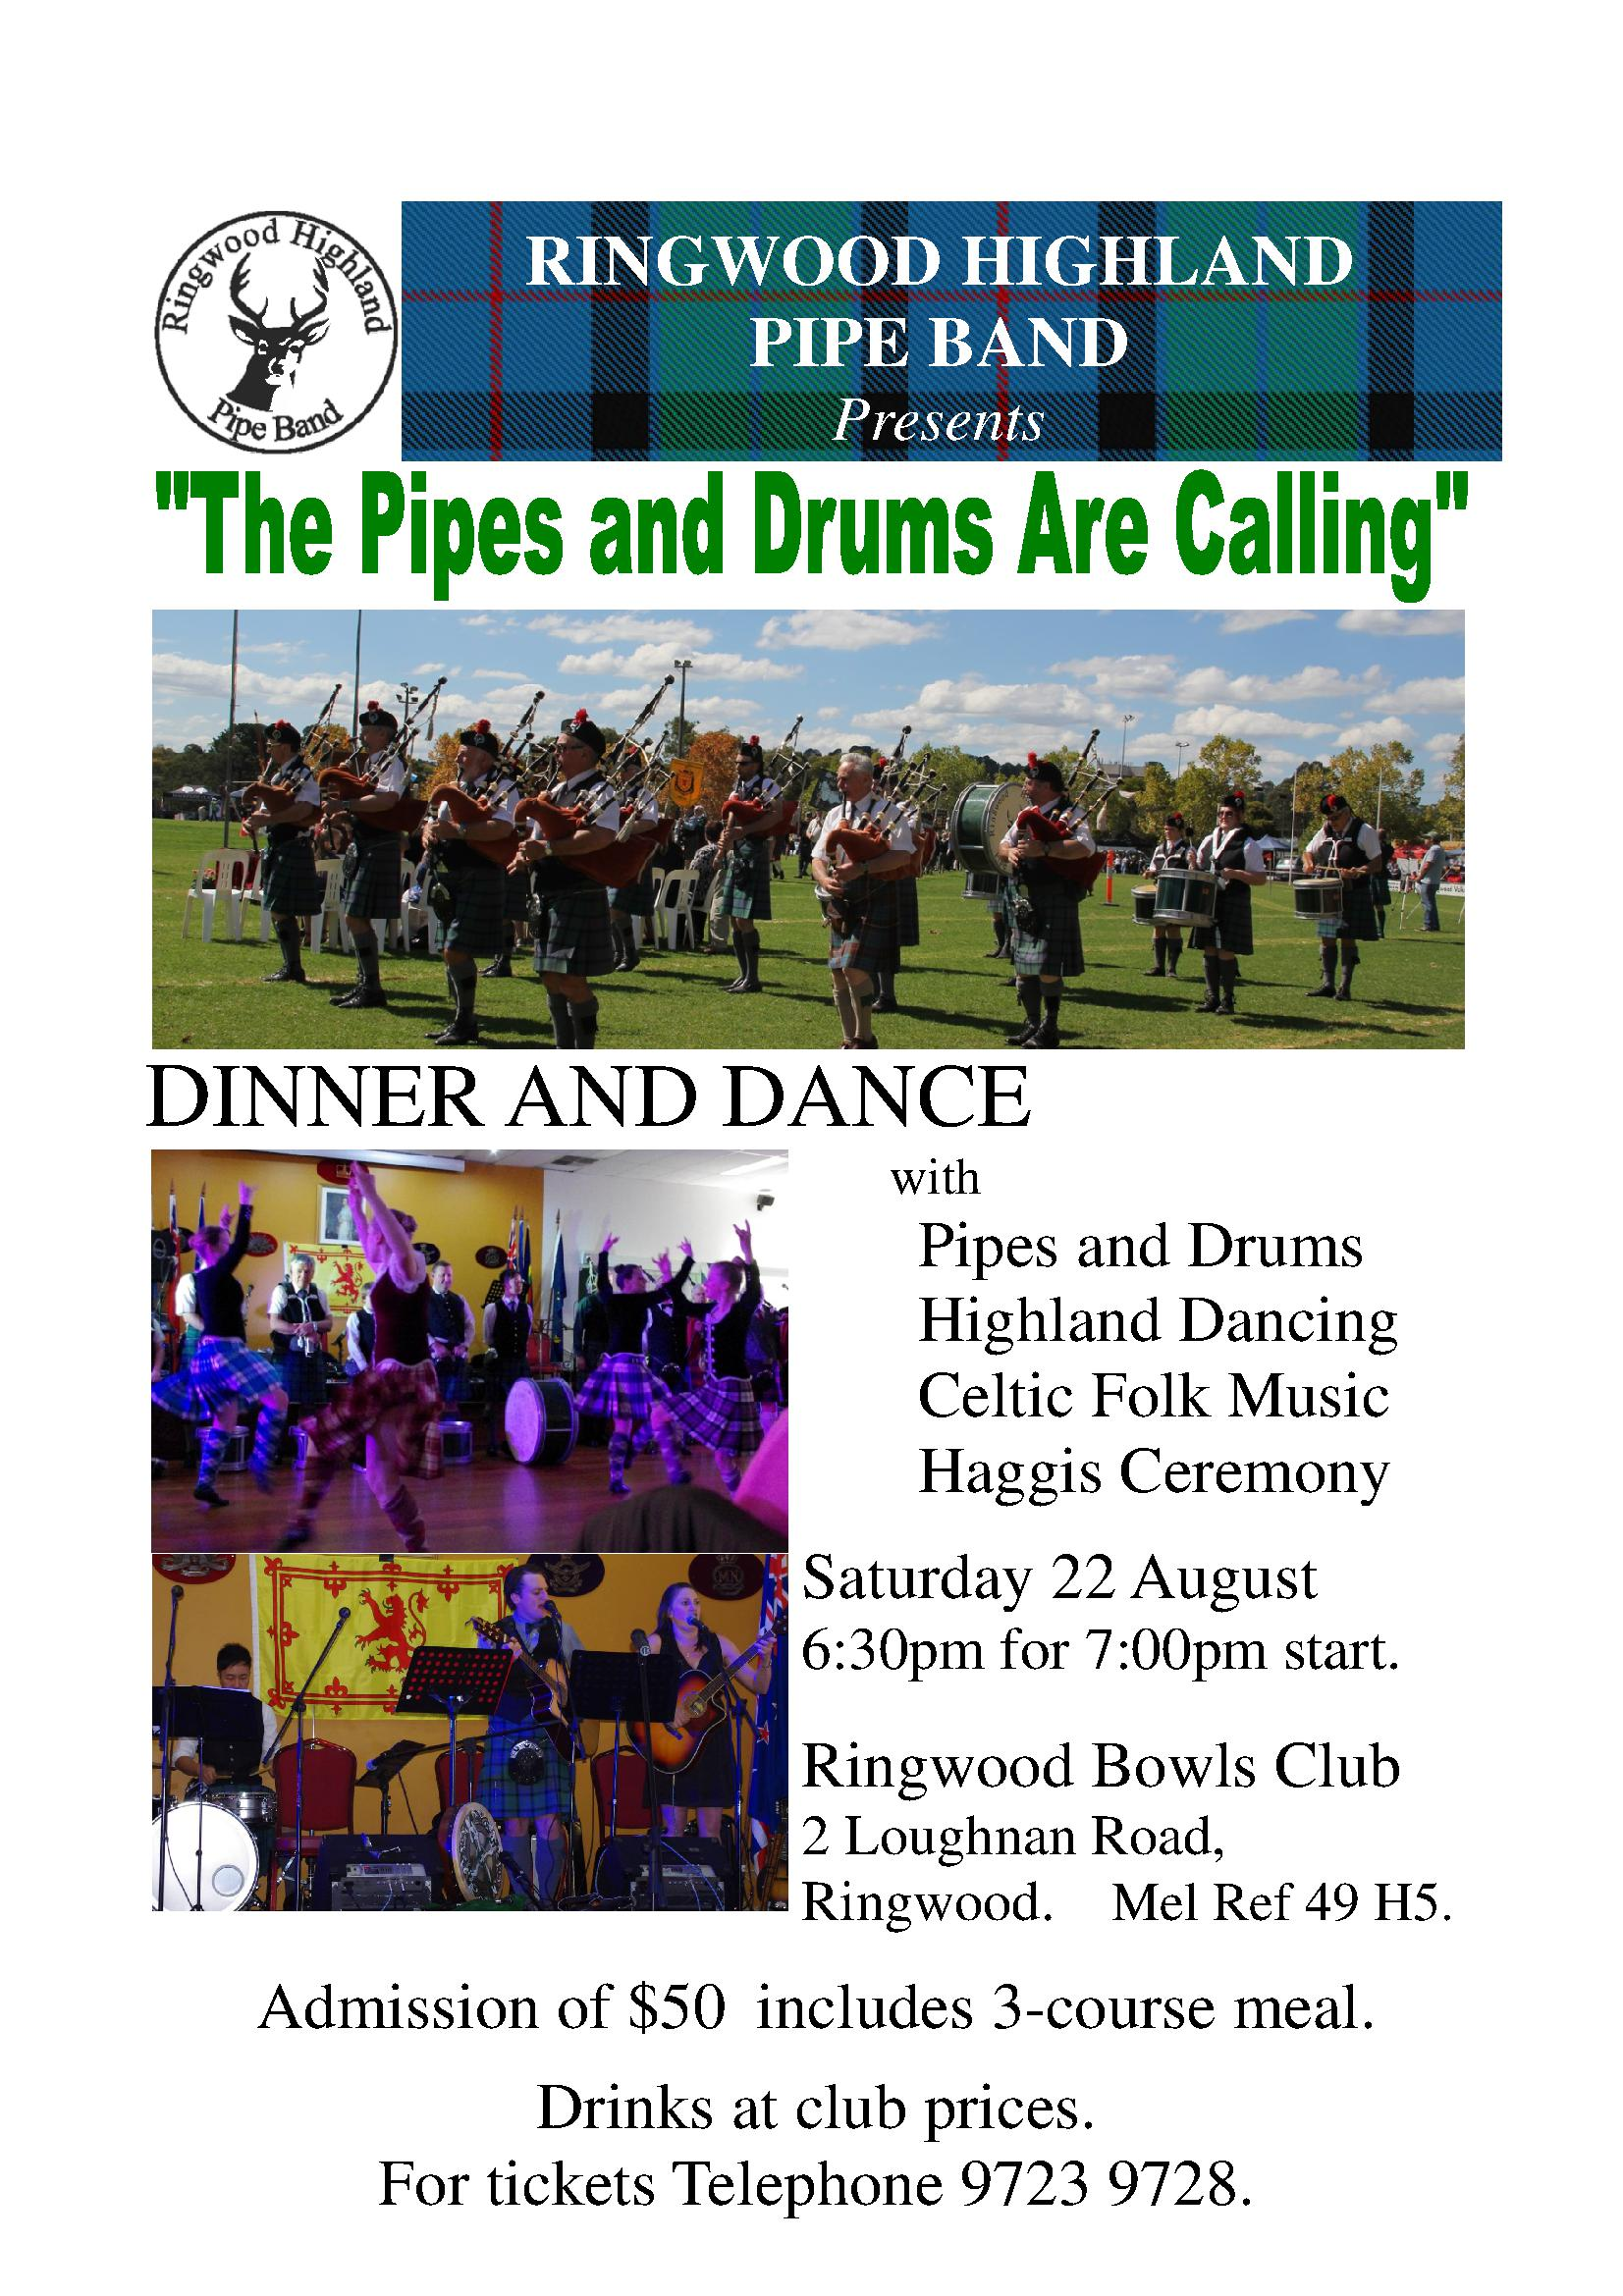 The Pipes And Drums Are Calling  - 22 08 2015